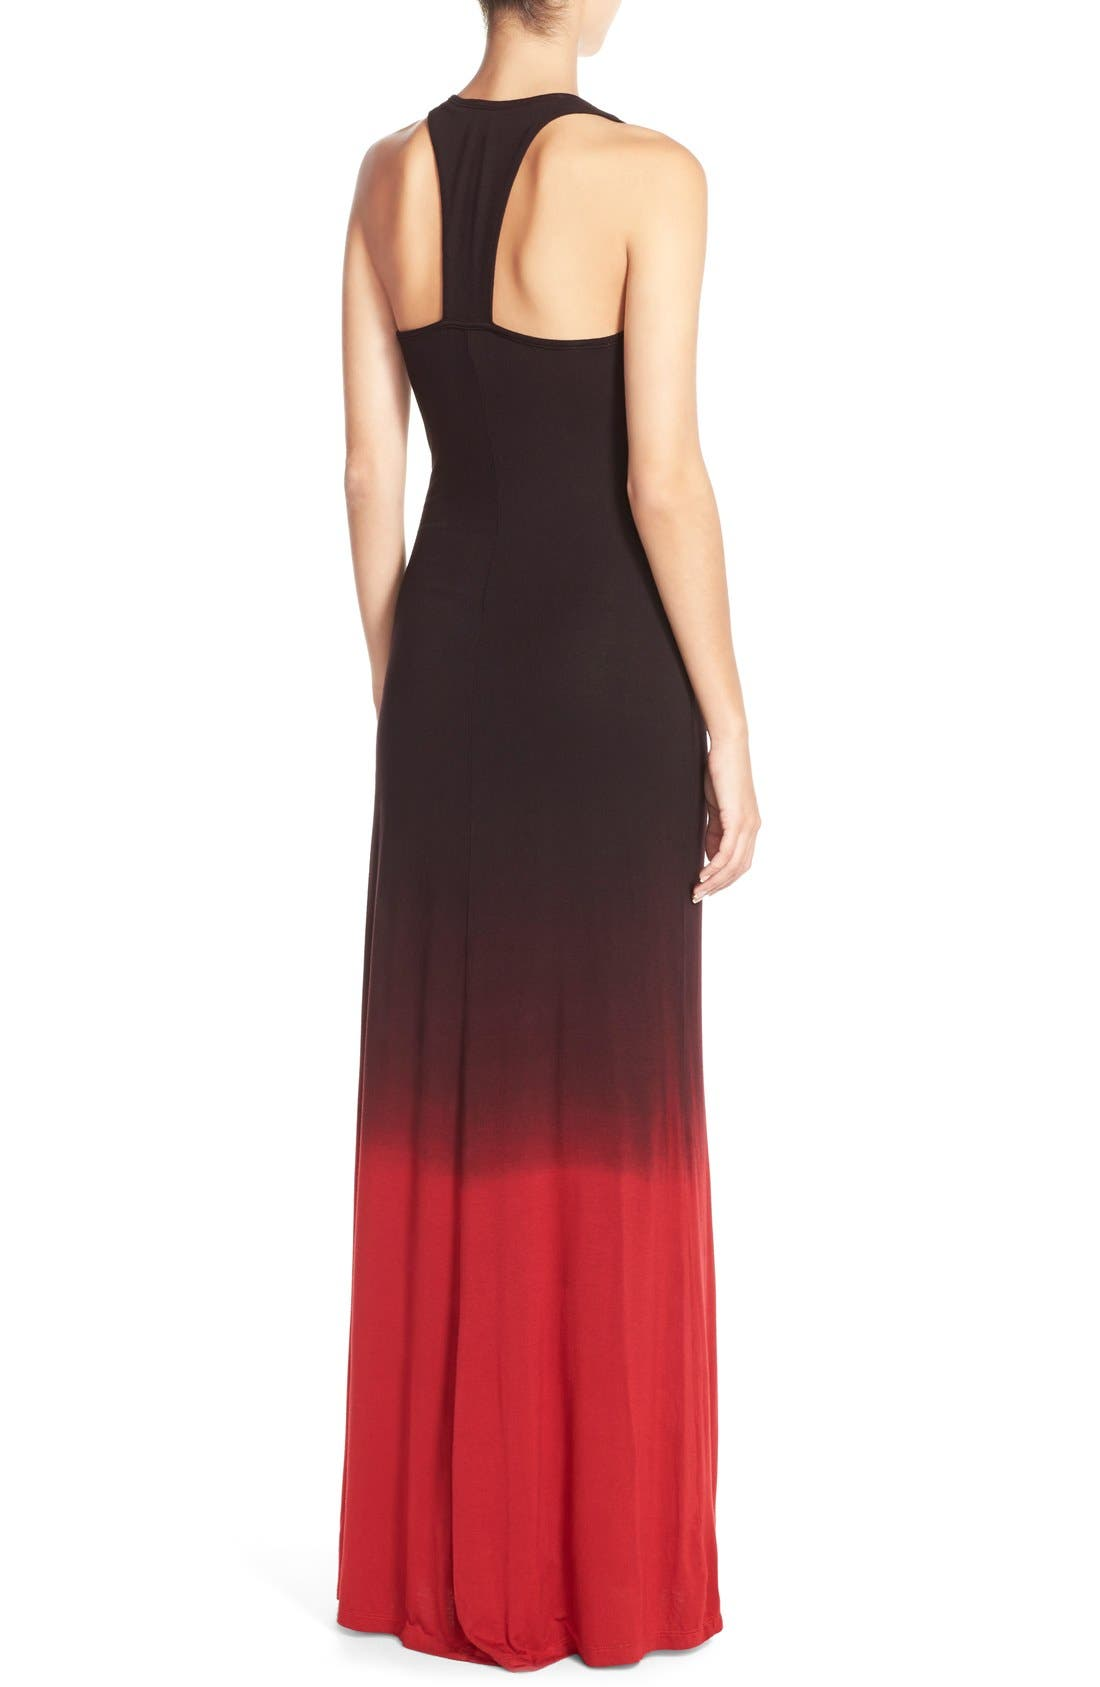 Racerback Maxi Dress,                             Alternate thumbnail 2, color,                             Black/ Red Ombre